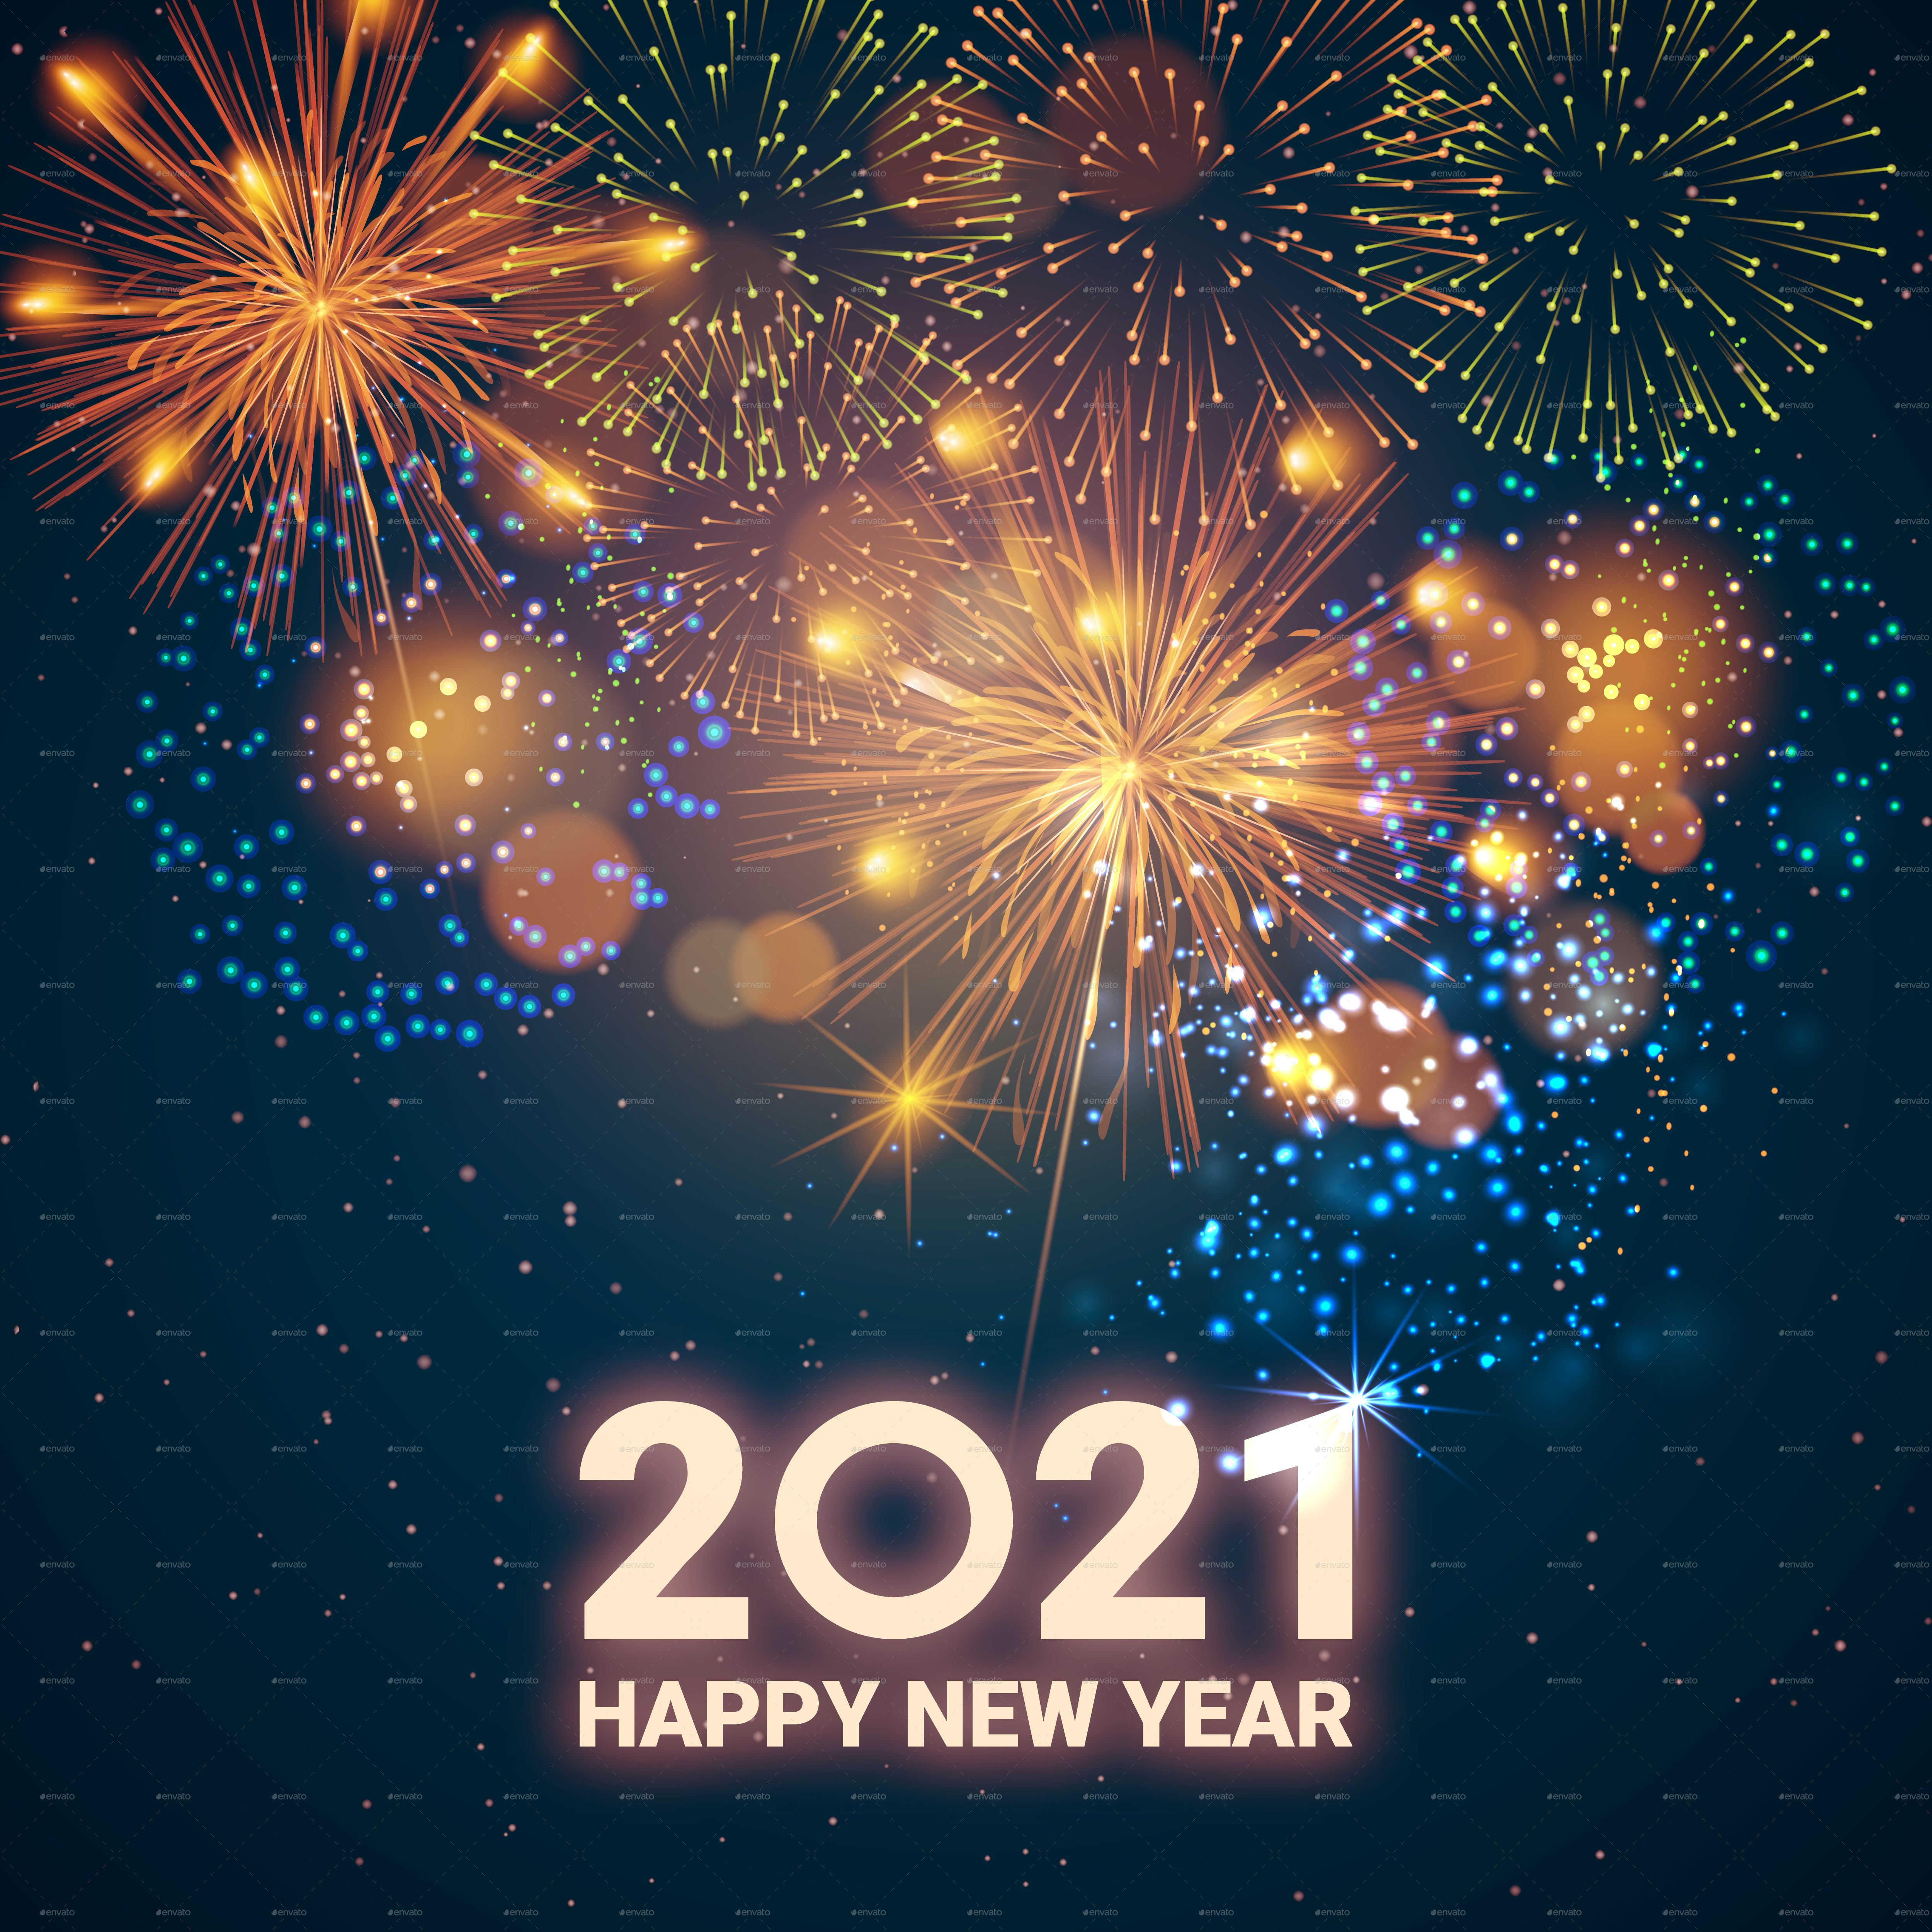 Happy New Year Fireworks, Happy New Year Pictures, Happy New Year Wallpaper, Happy New Year Quotes, Happy New Year Wishes, Happy New Year Greetings, Quotes About New Year, Happy New Year 2019, Merry Christmas And Happy New Year